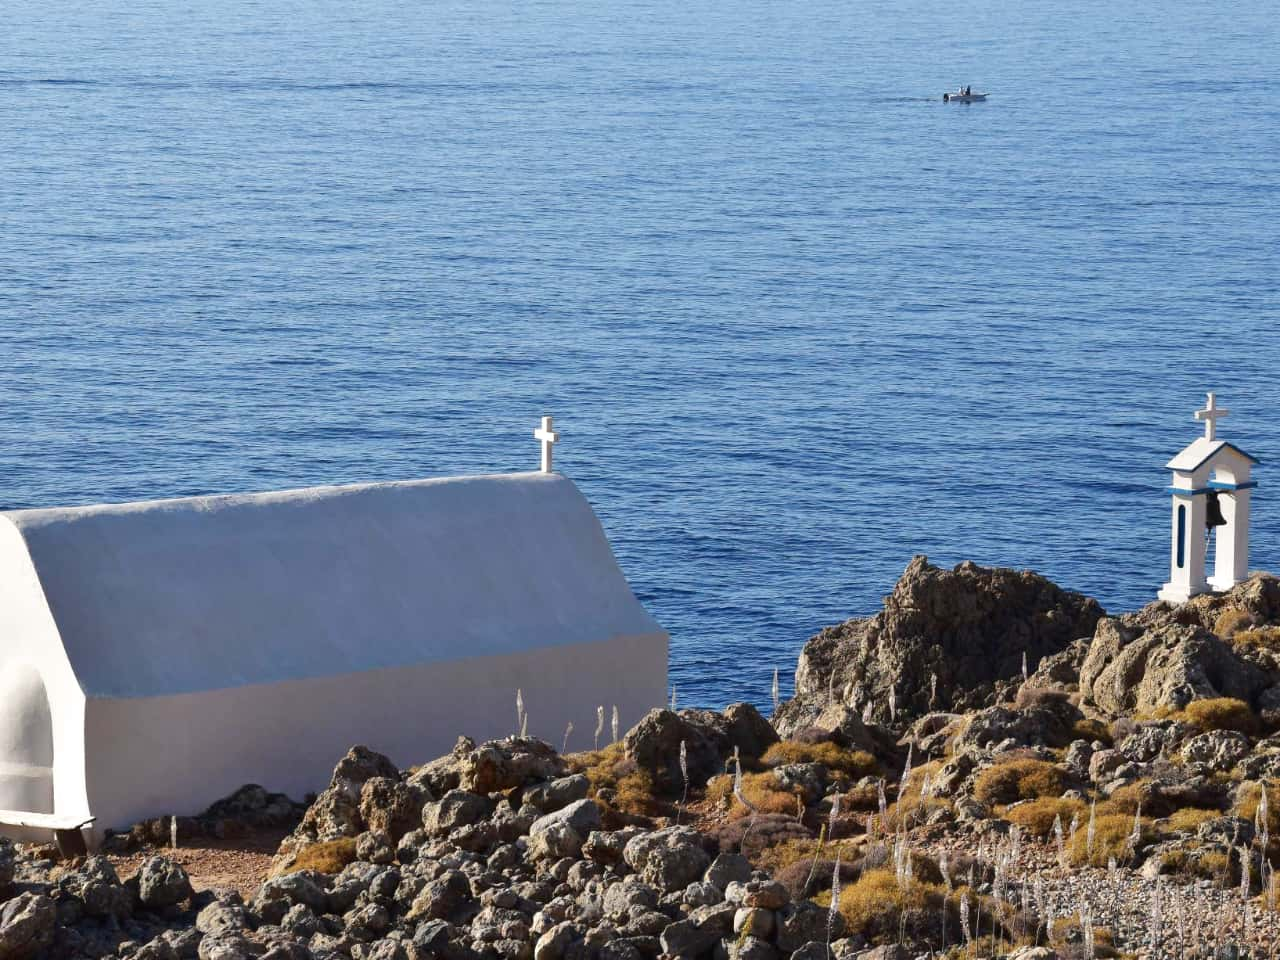 travel guide loutro village, loutro village best hotels, loutro village where to stay, activities loutro village, apartments studios rooms loutro village, ferry loutro village, hiking loutro village, sea kayak loutro village, sailing sfakia loutro, travel tips loutro village